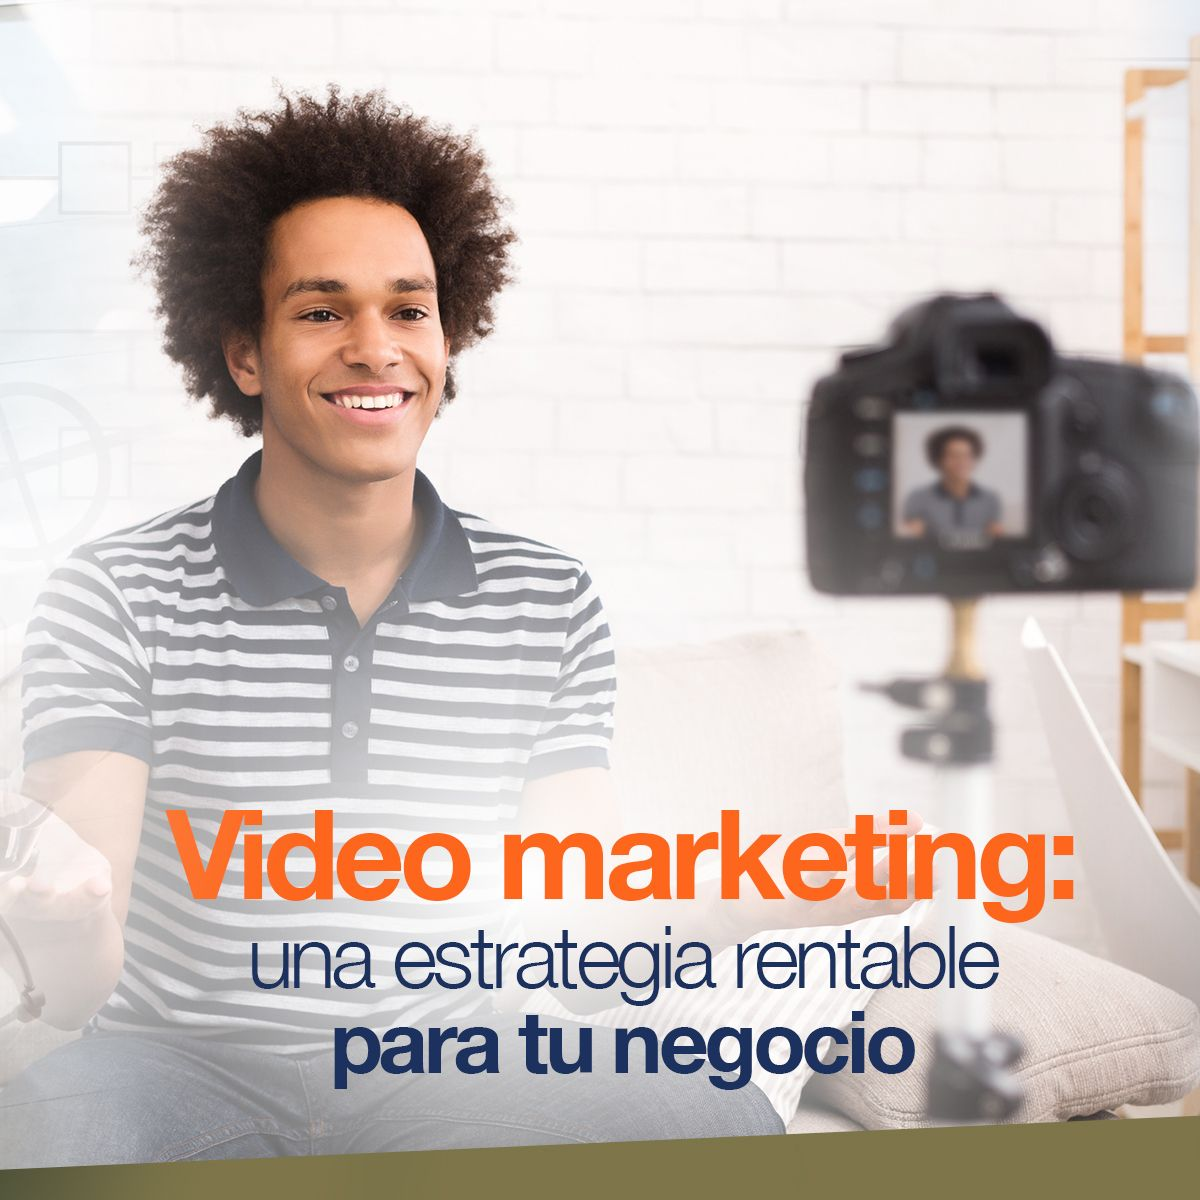 Video marketing: una estrategia rentable para tu negocio